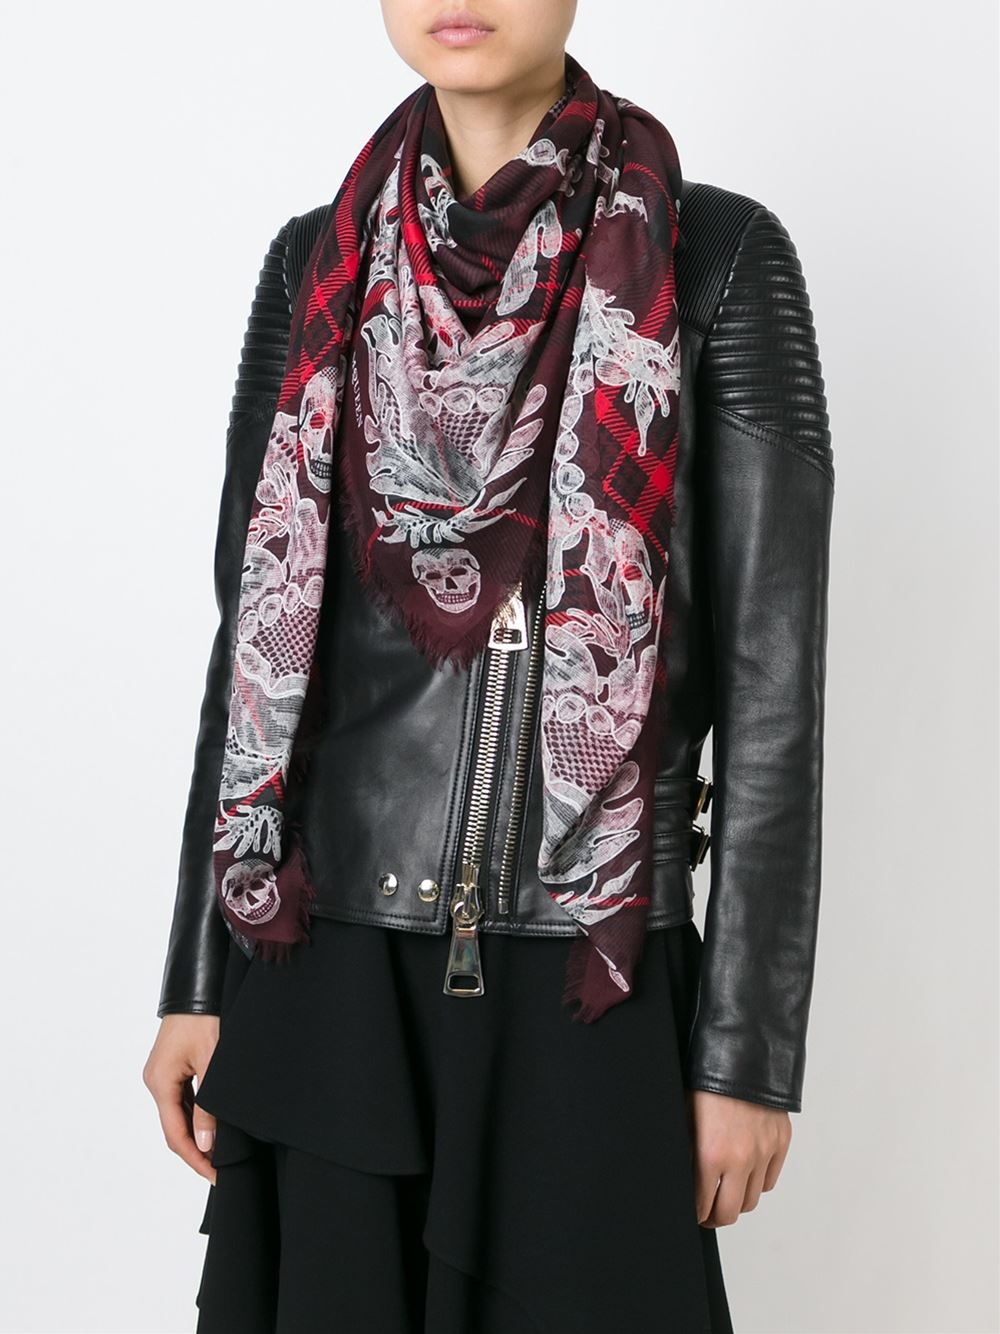 Buy Mcqueen alexander scarf red photo picture trends